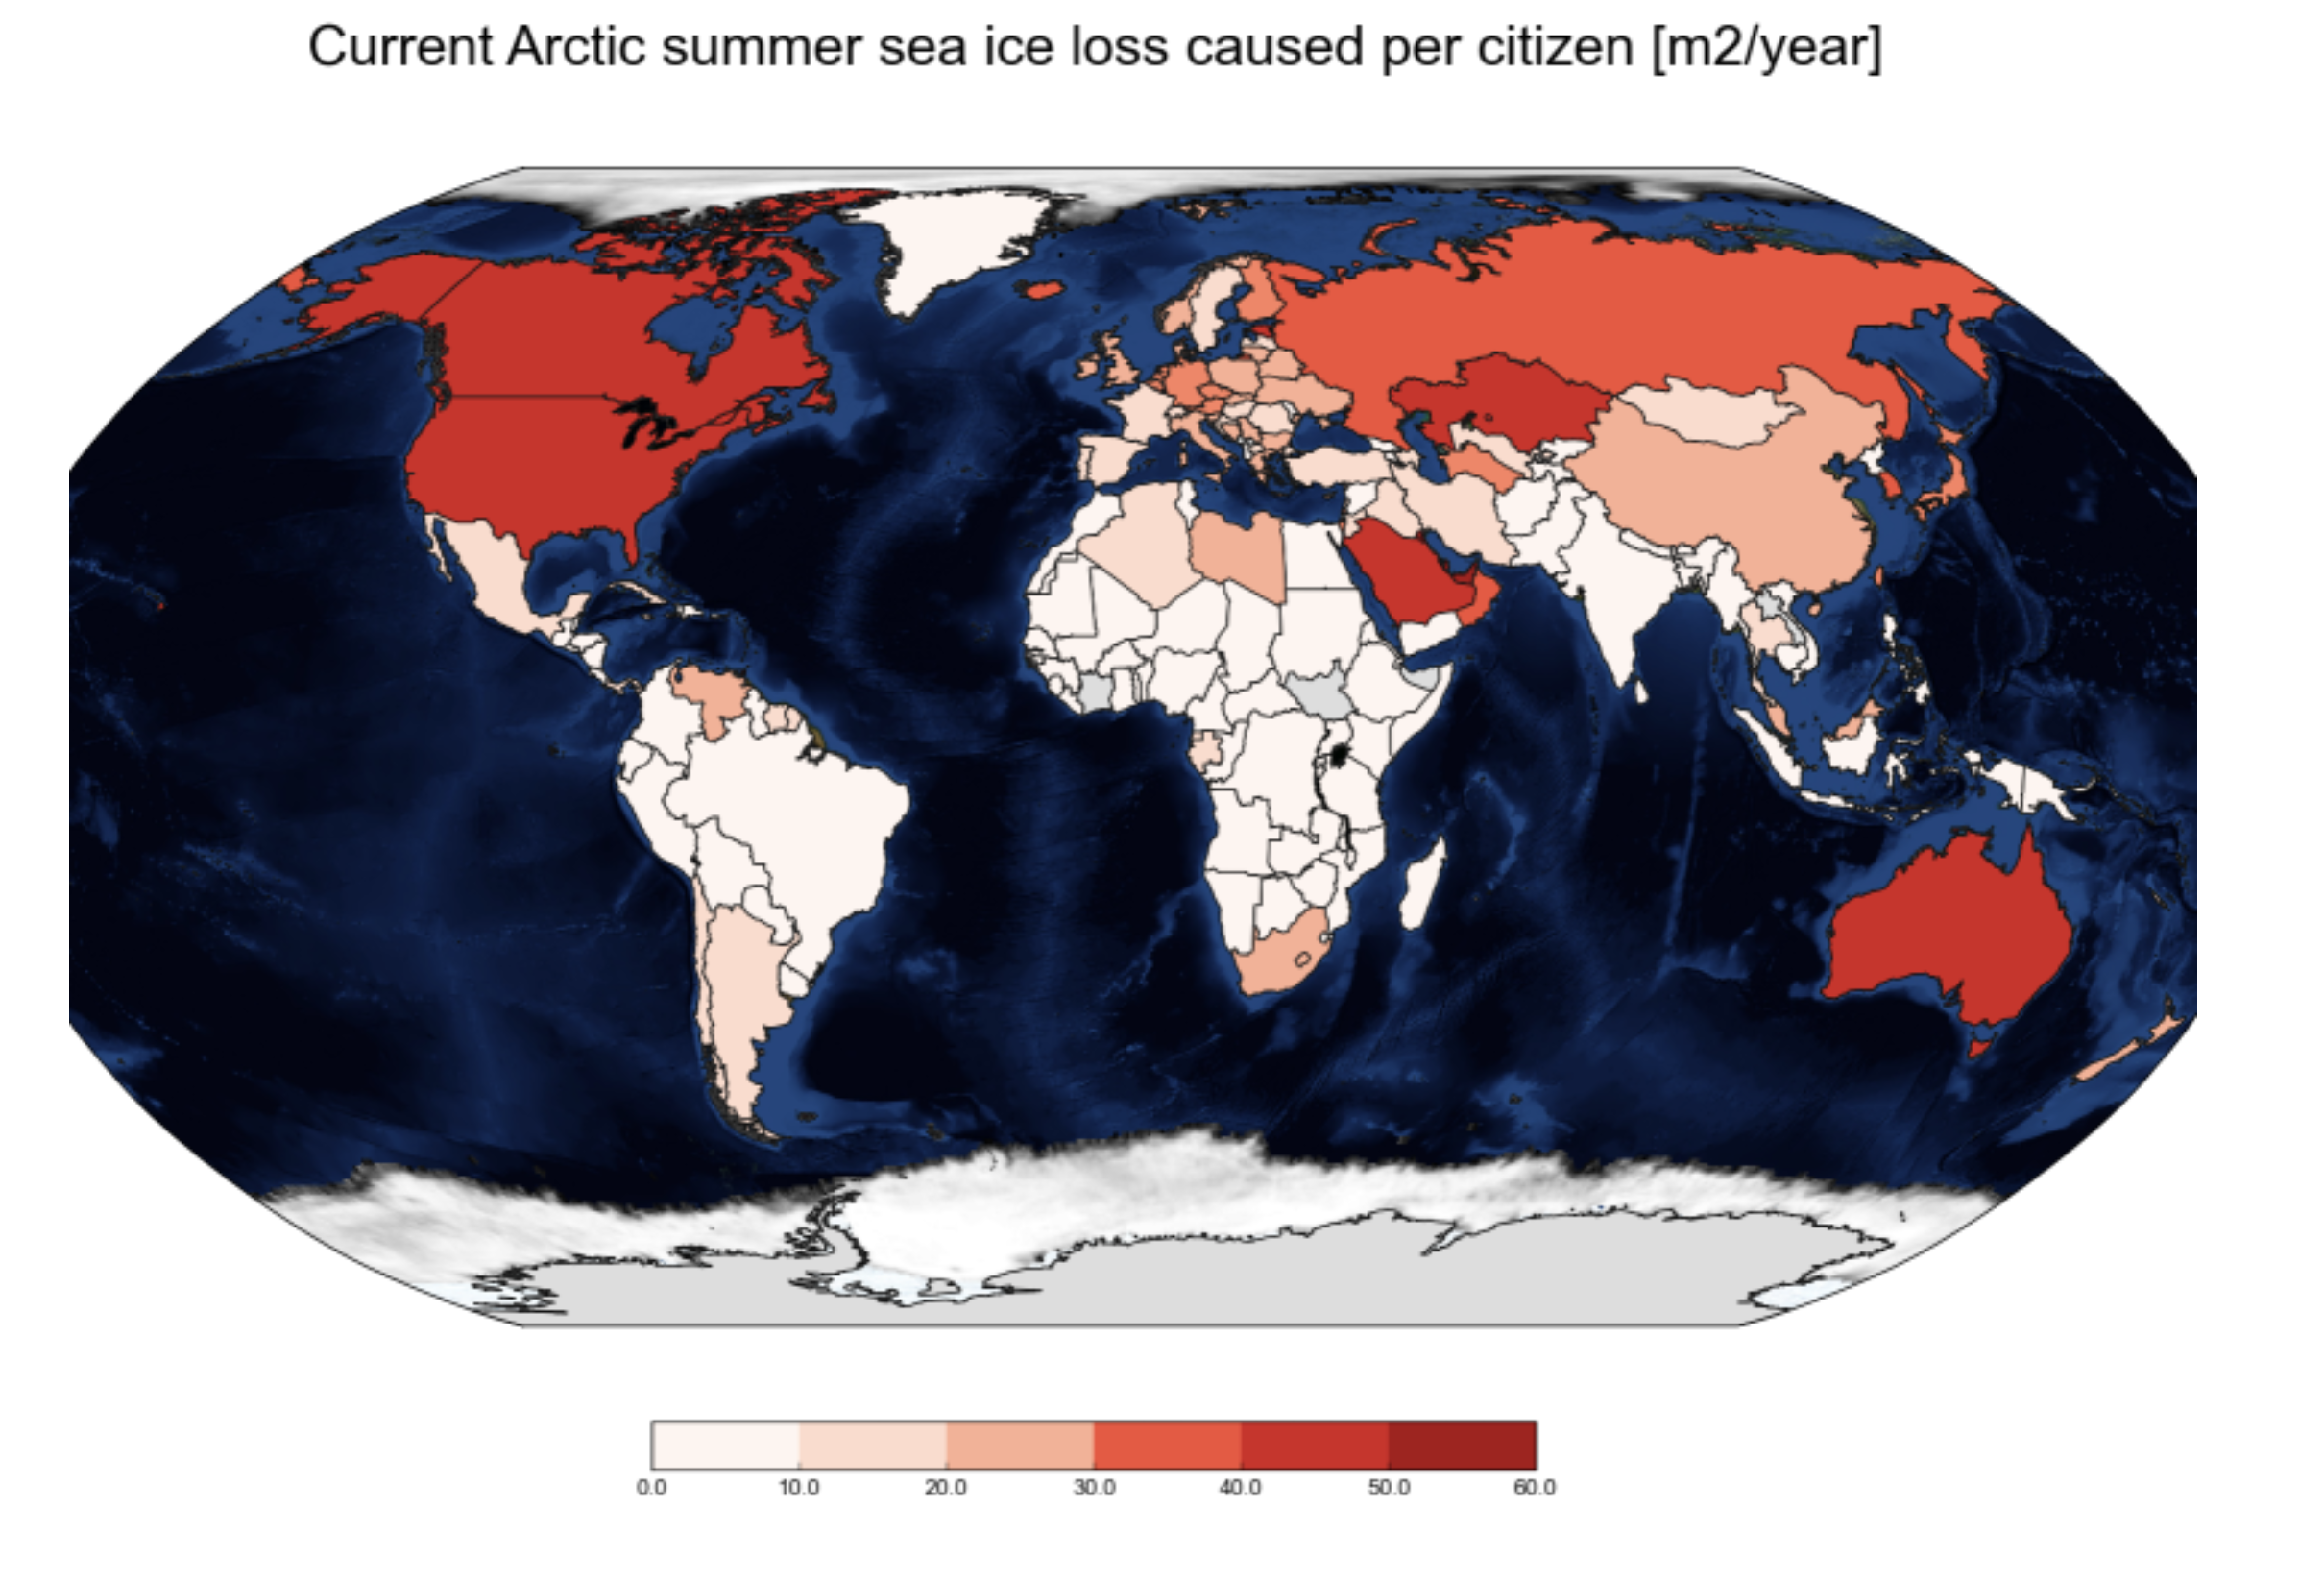 Which countries' populations are responsible for the most summer sea ice loss?